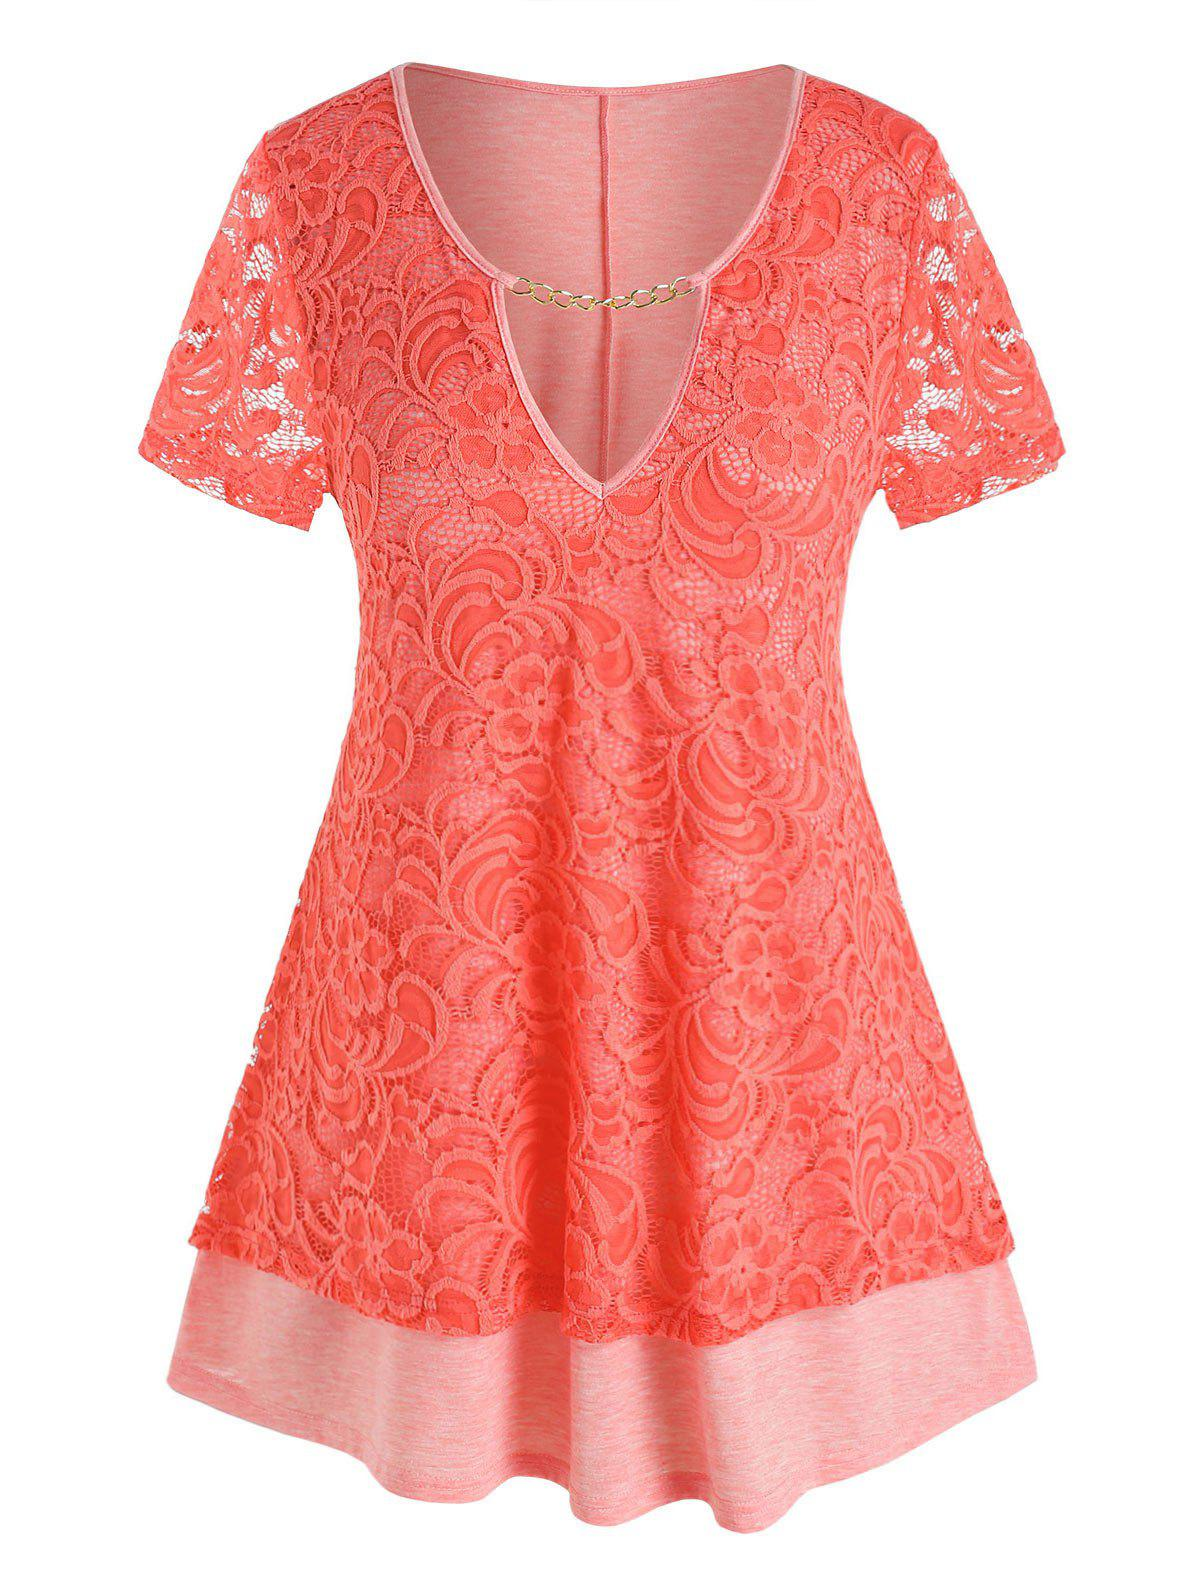 Plus Size Lace Chain Cutout Short Sleeve Tee - LIGHT PINK 2X